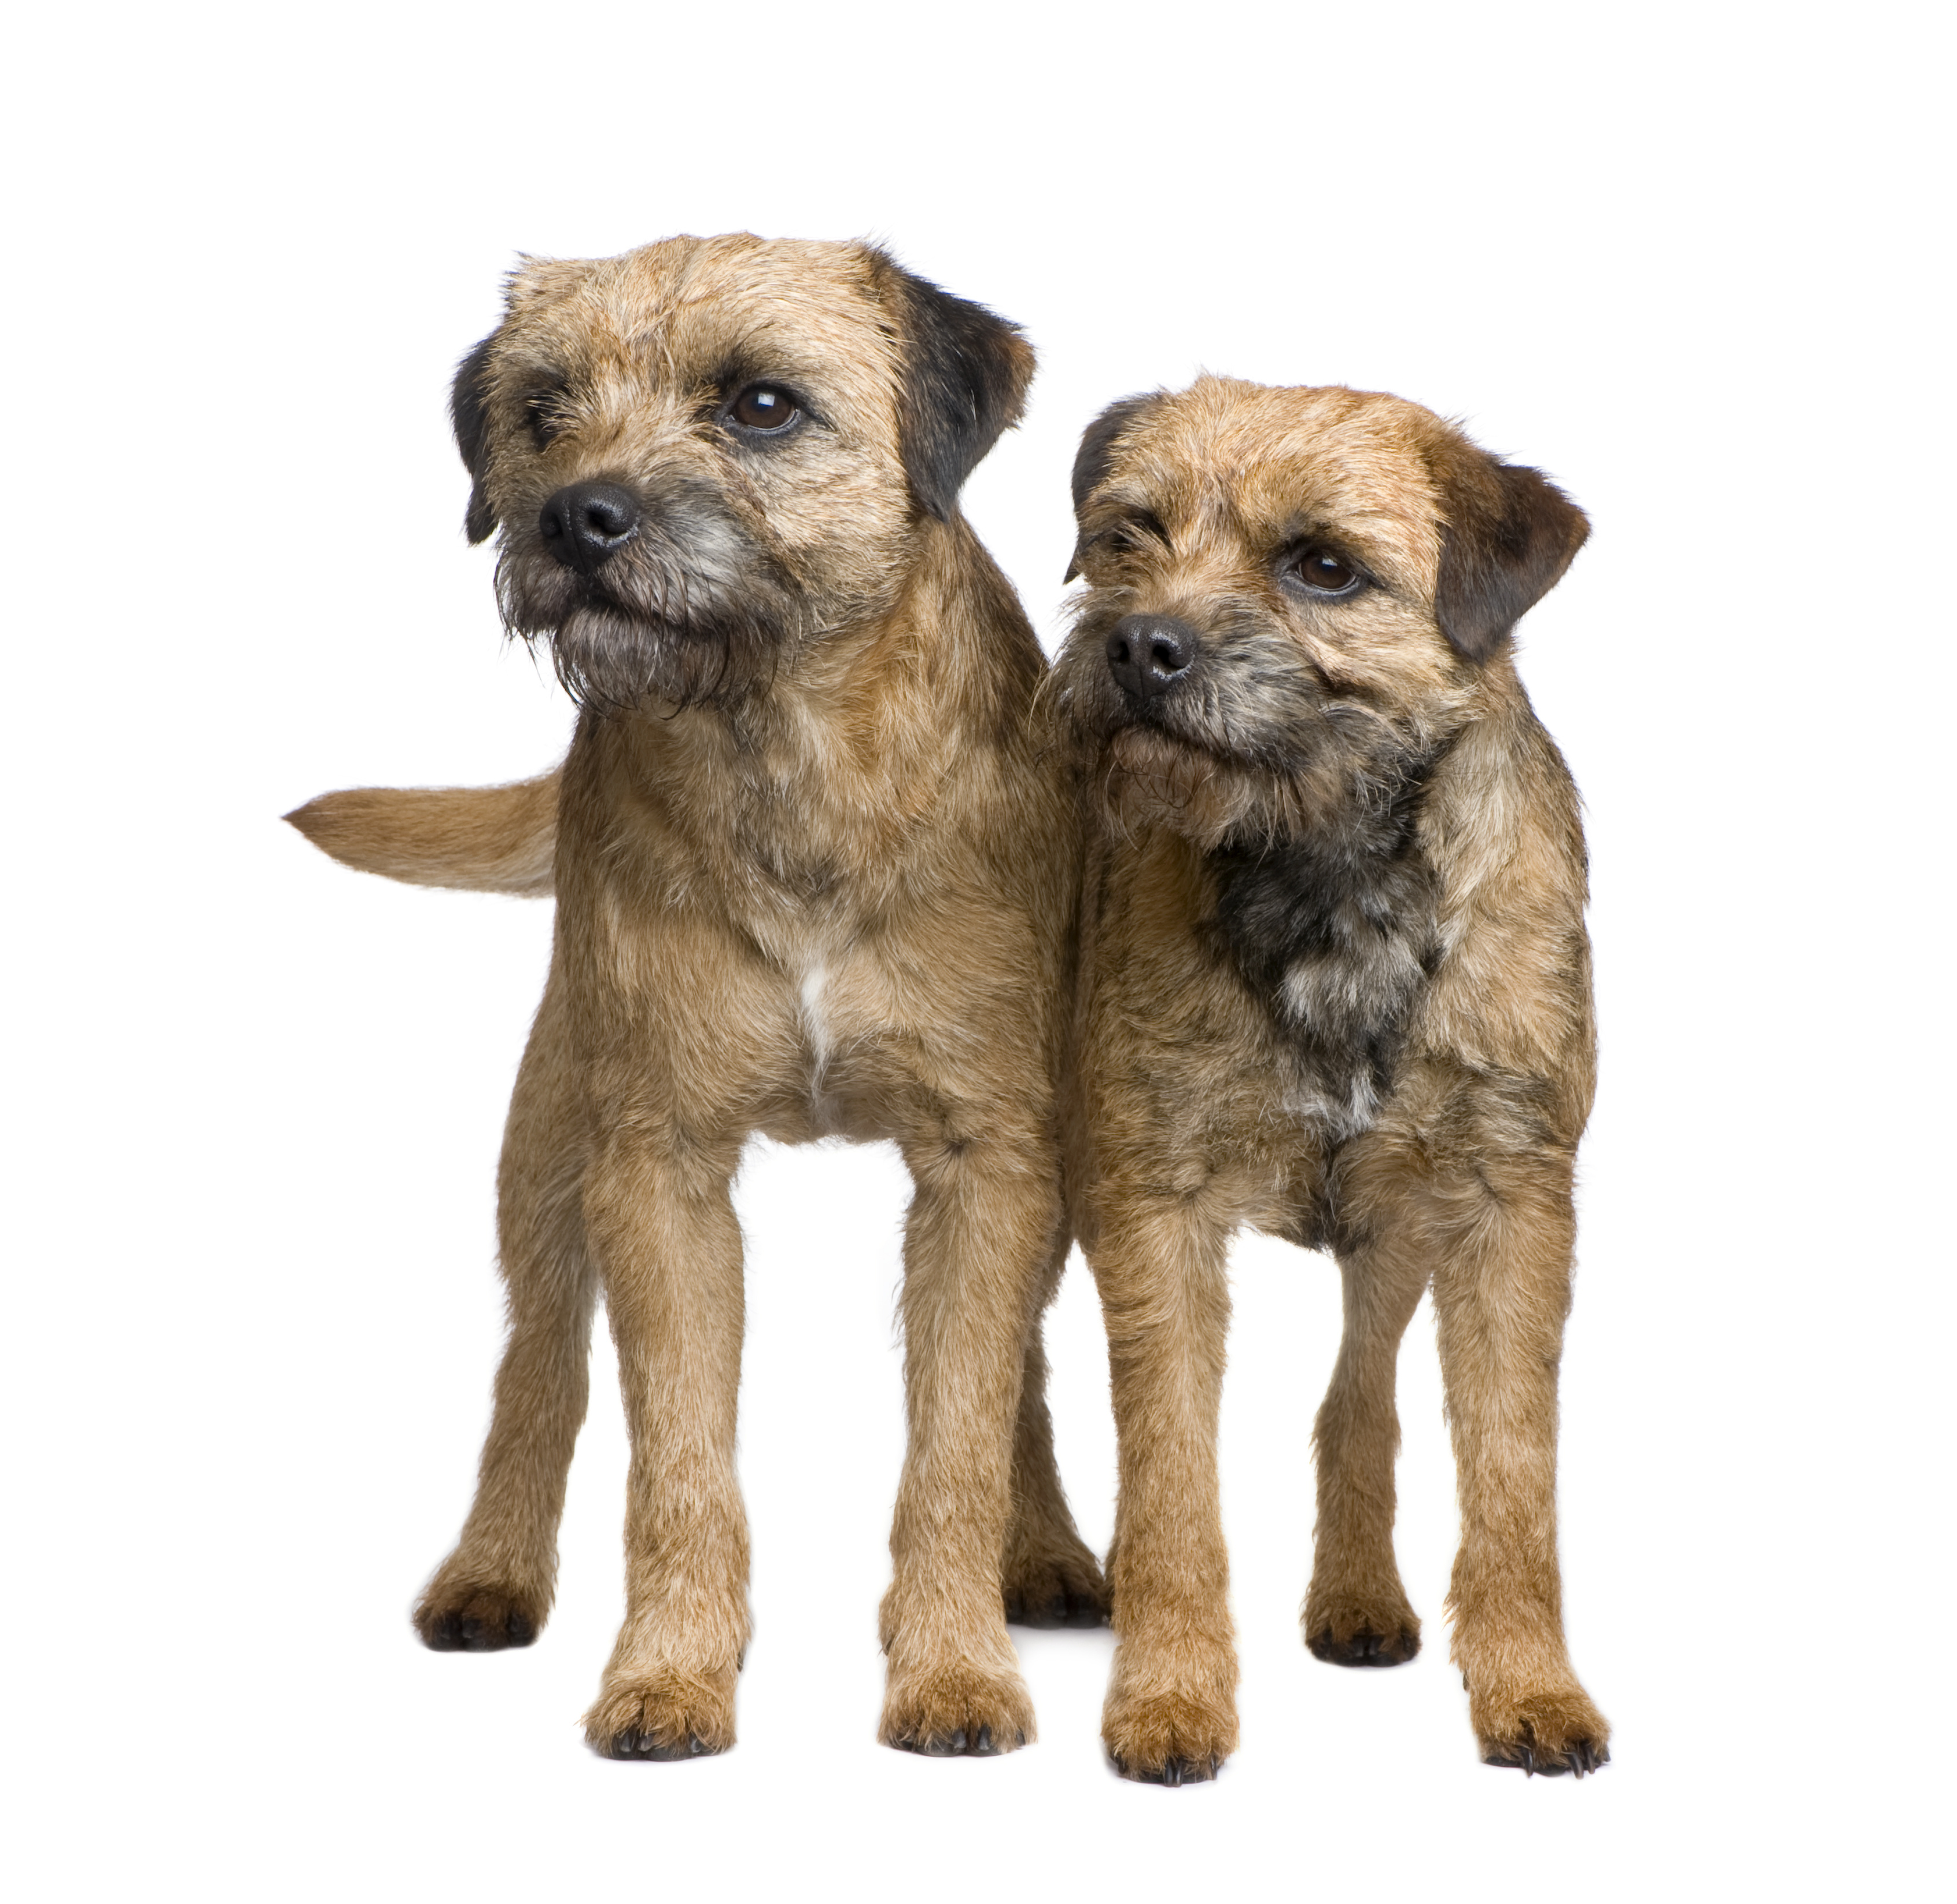 Two Border Terriers standing in front of a white background